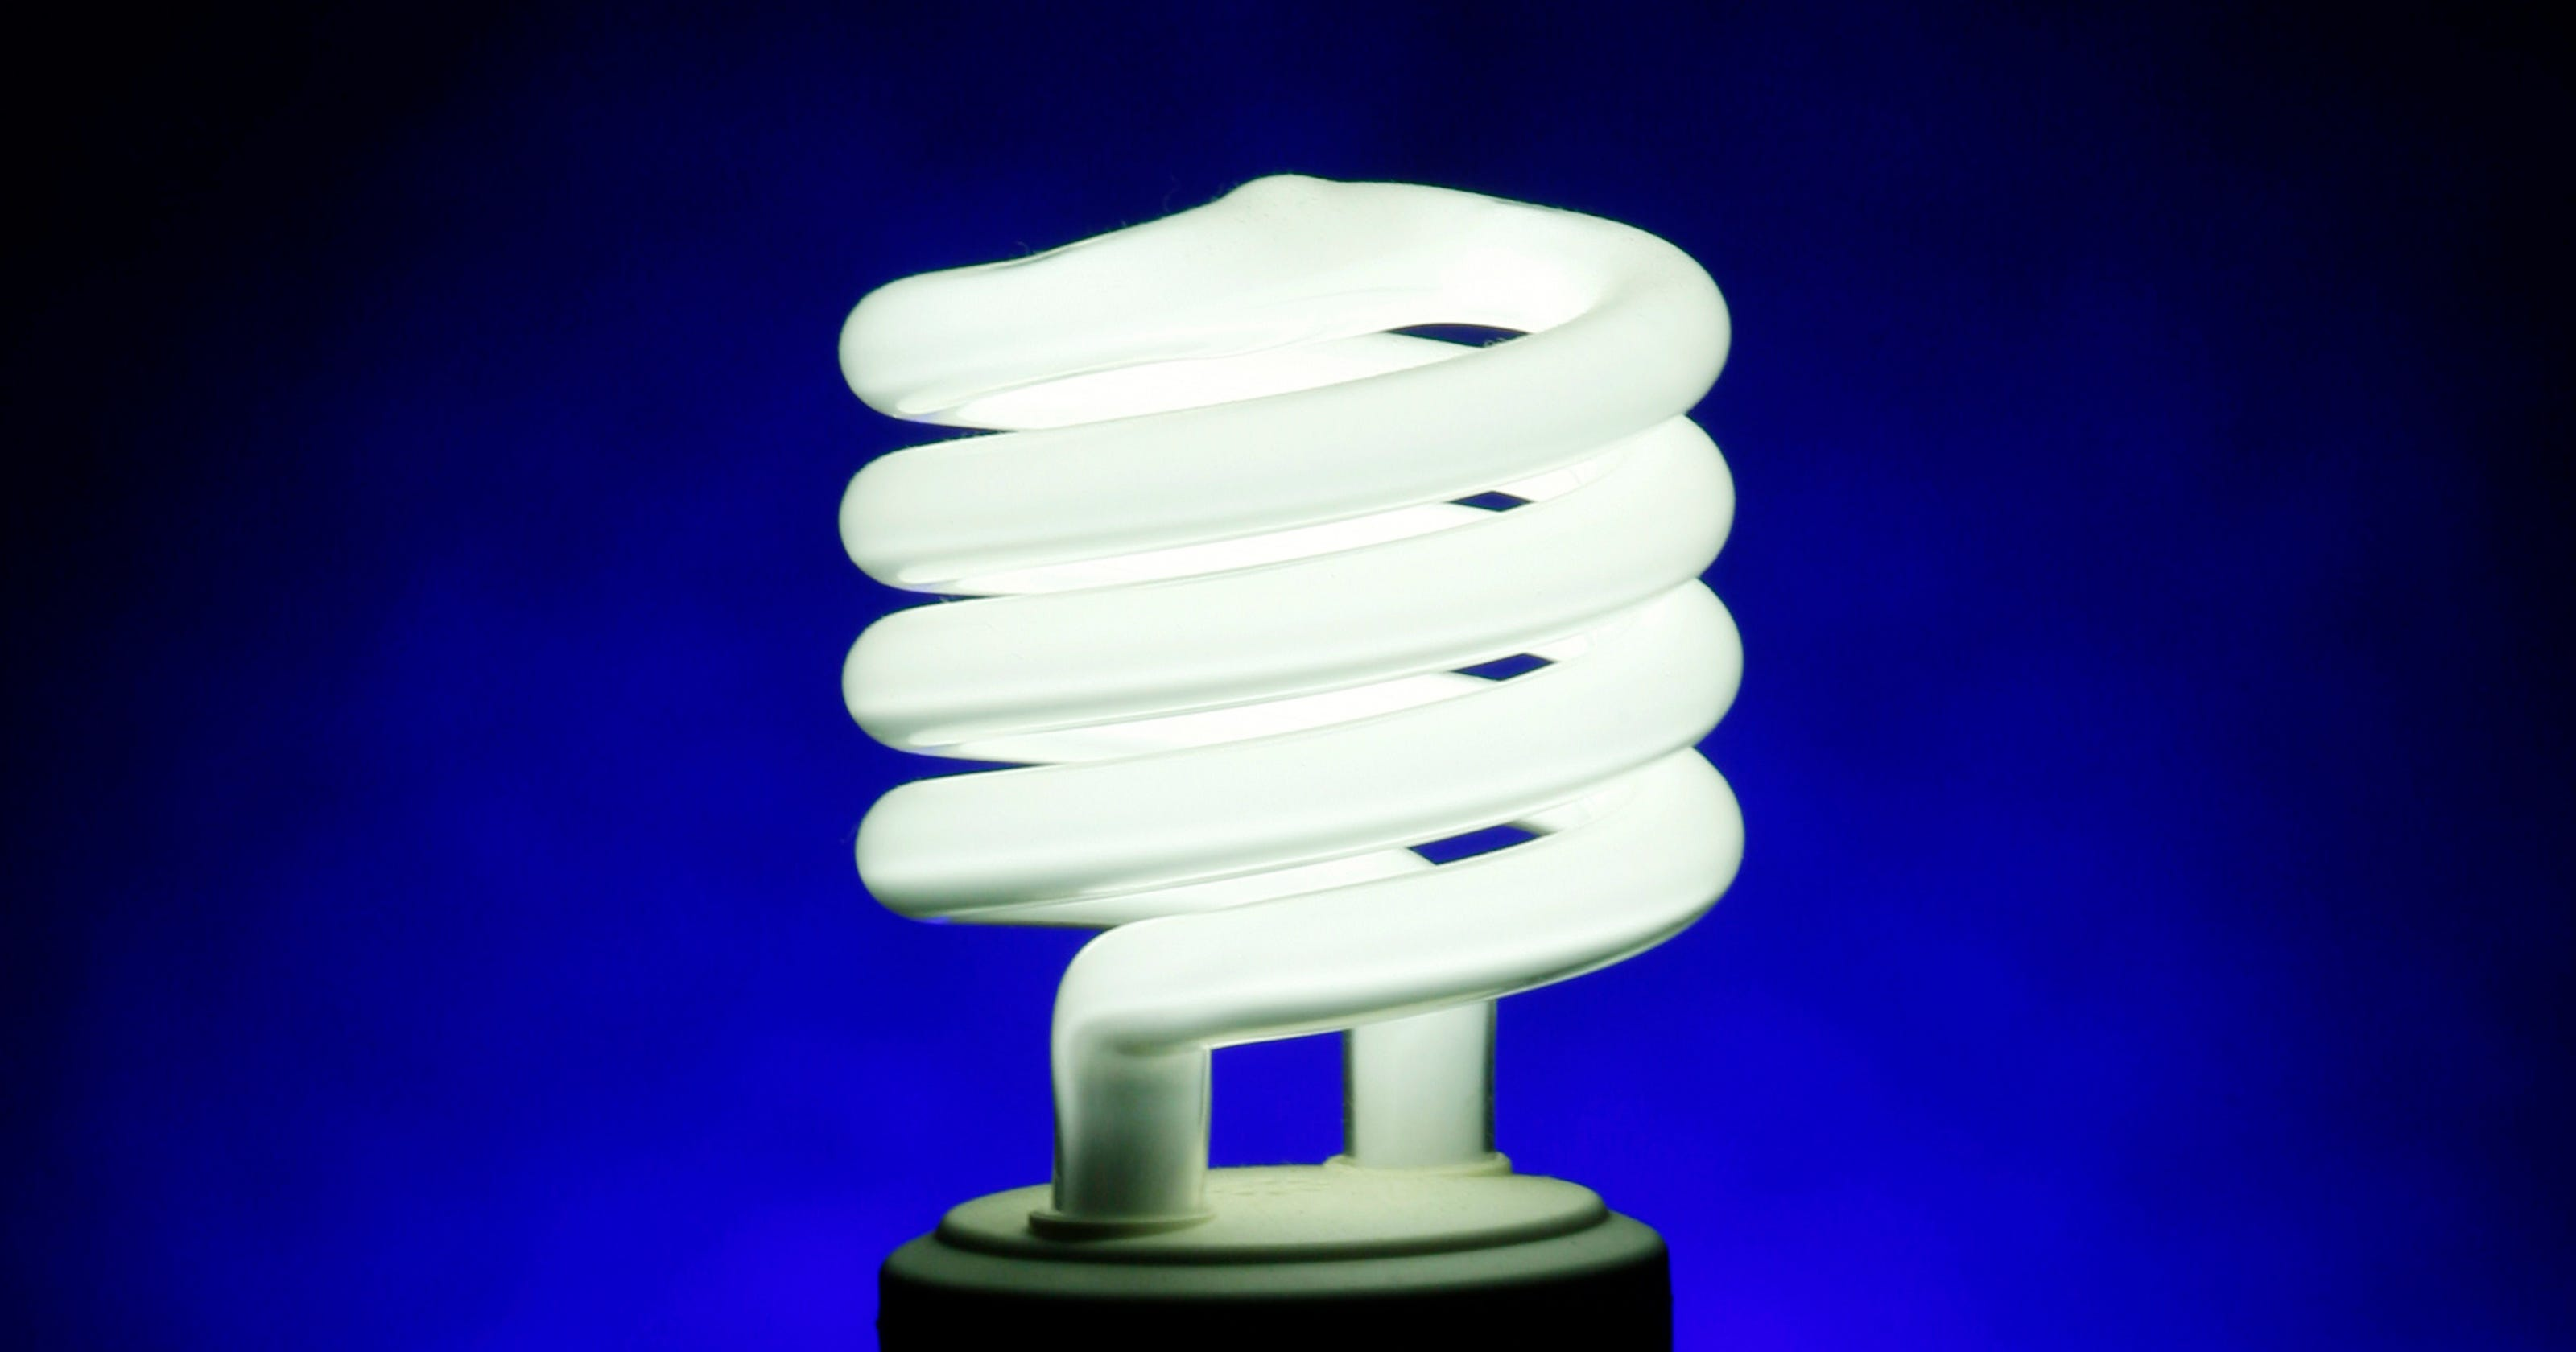 Why People Still Use Inefficient Incandescent Light Bulbs